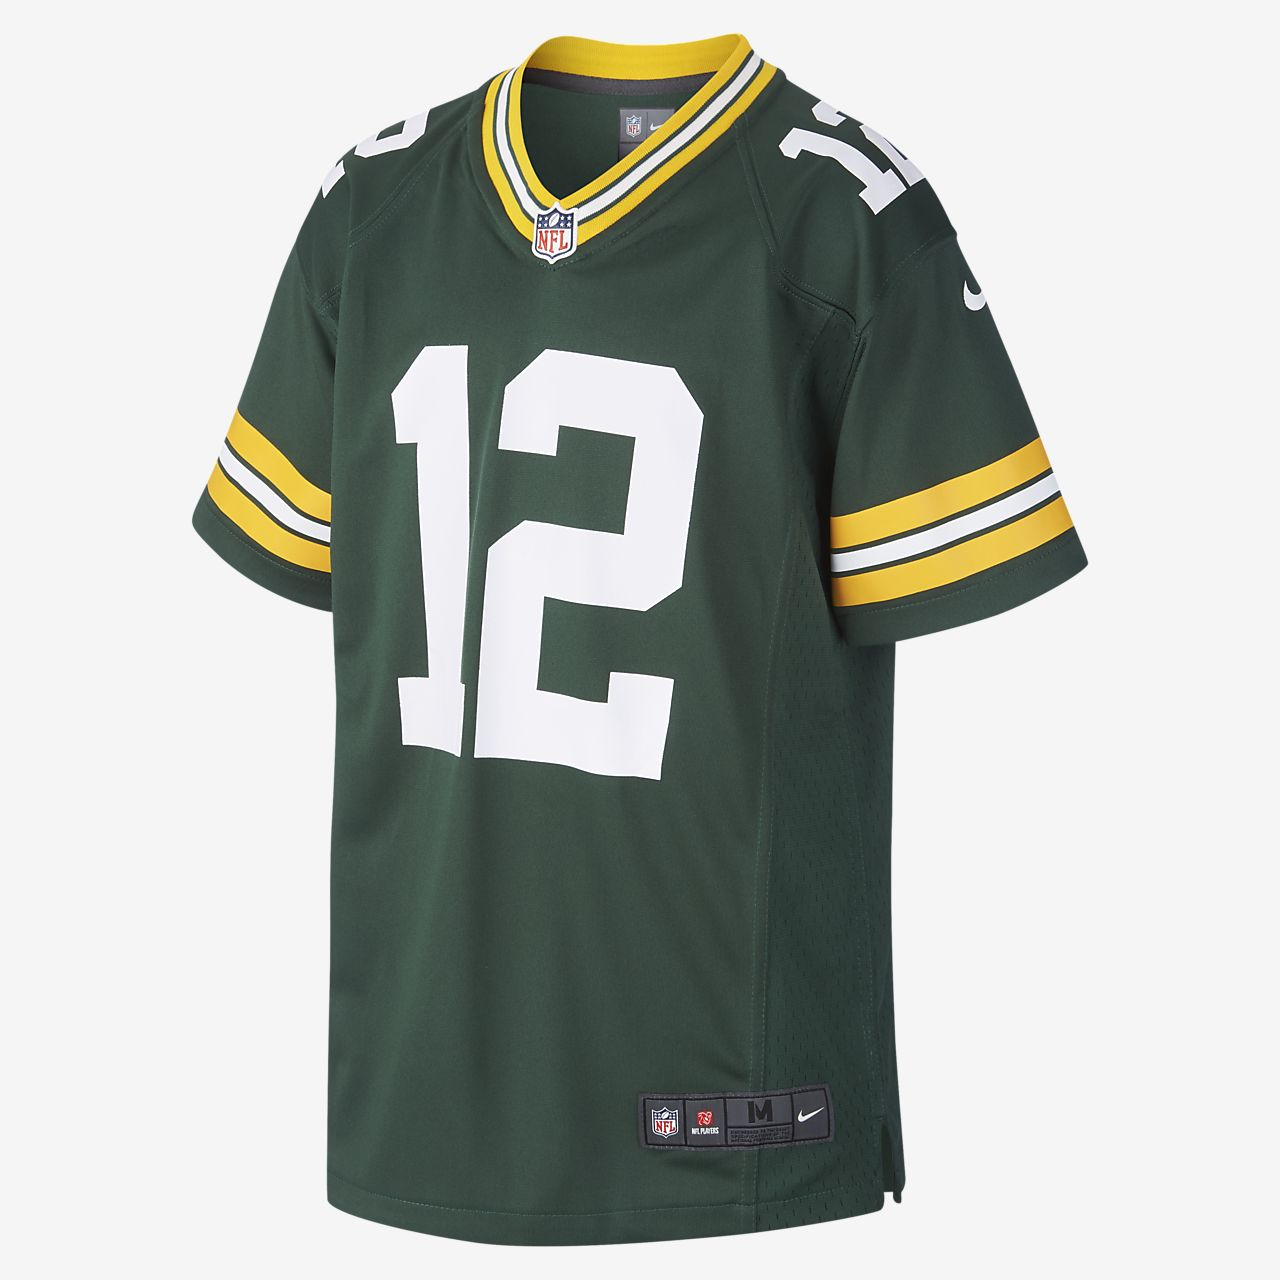 Maillot de football américain NFL Green Bay Packers Game (Aaron Rodgers) pour Enfant plus âgé